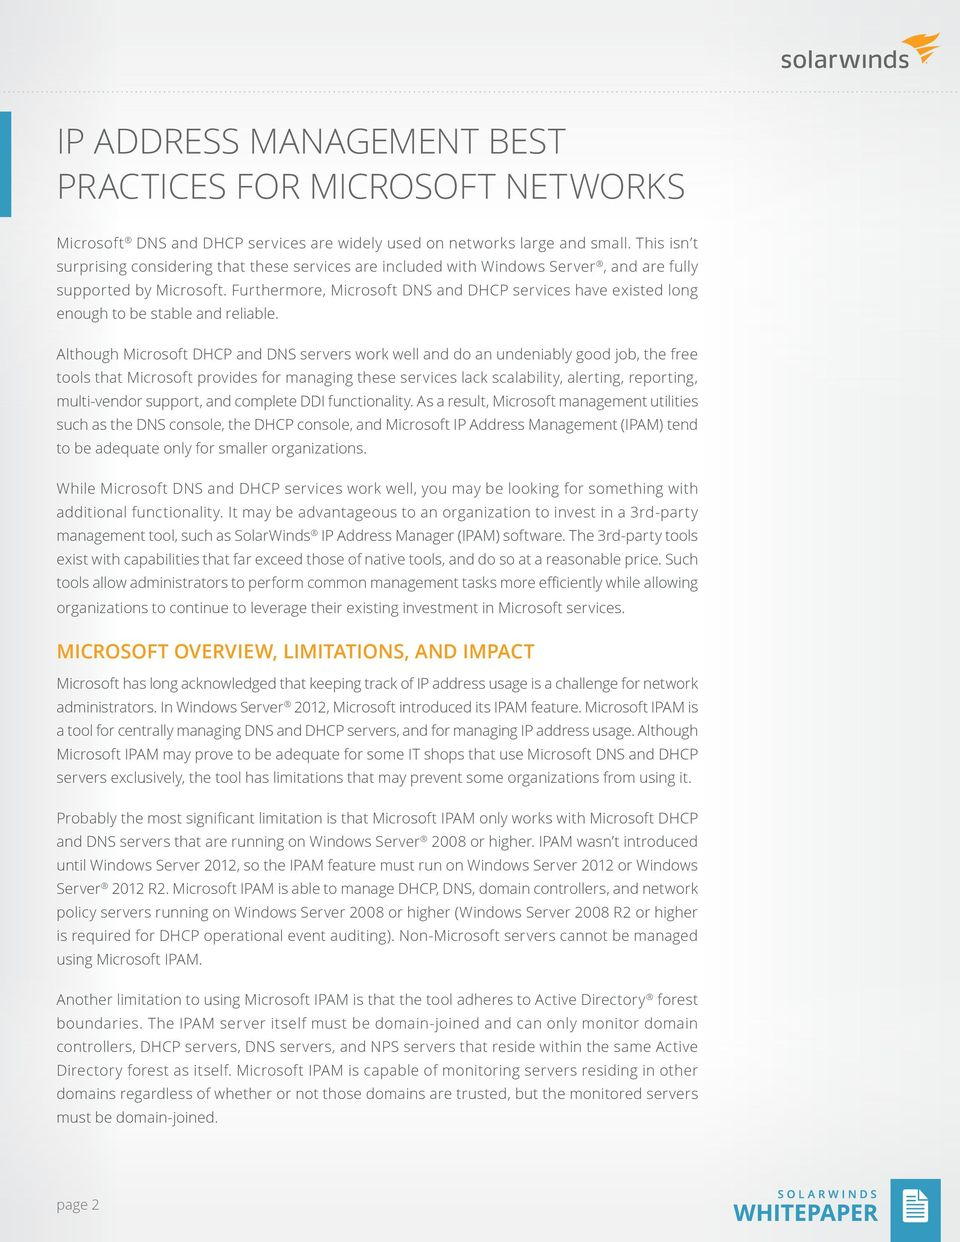 ip address management best practices for microsoft networks - PDF